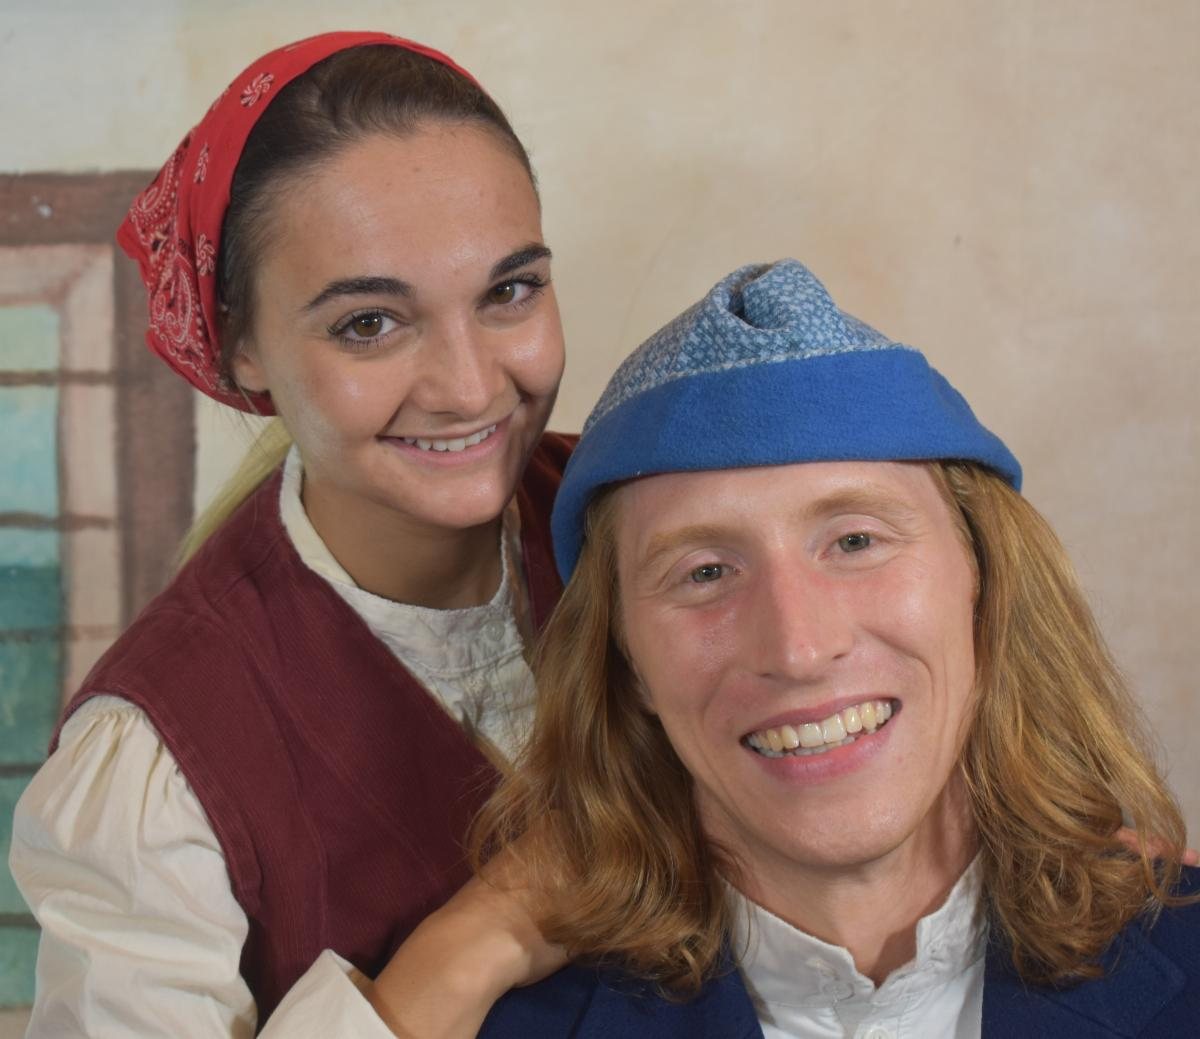 Headshot of male and female actors dressed in costume with the woman leaning on the man's shoulder in front of a beige wall with a window painted on it that is part of the show's set